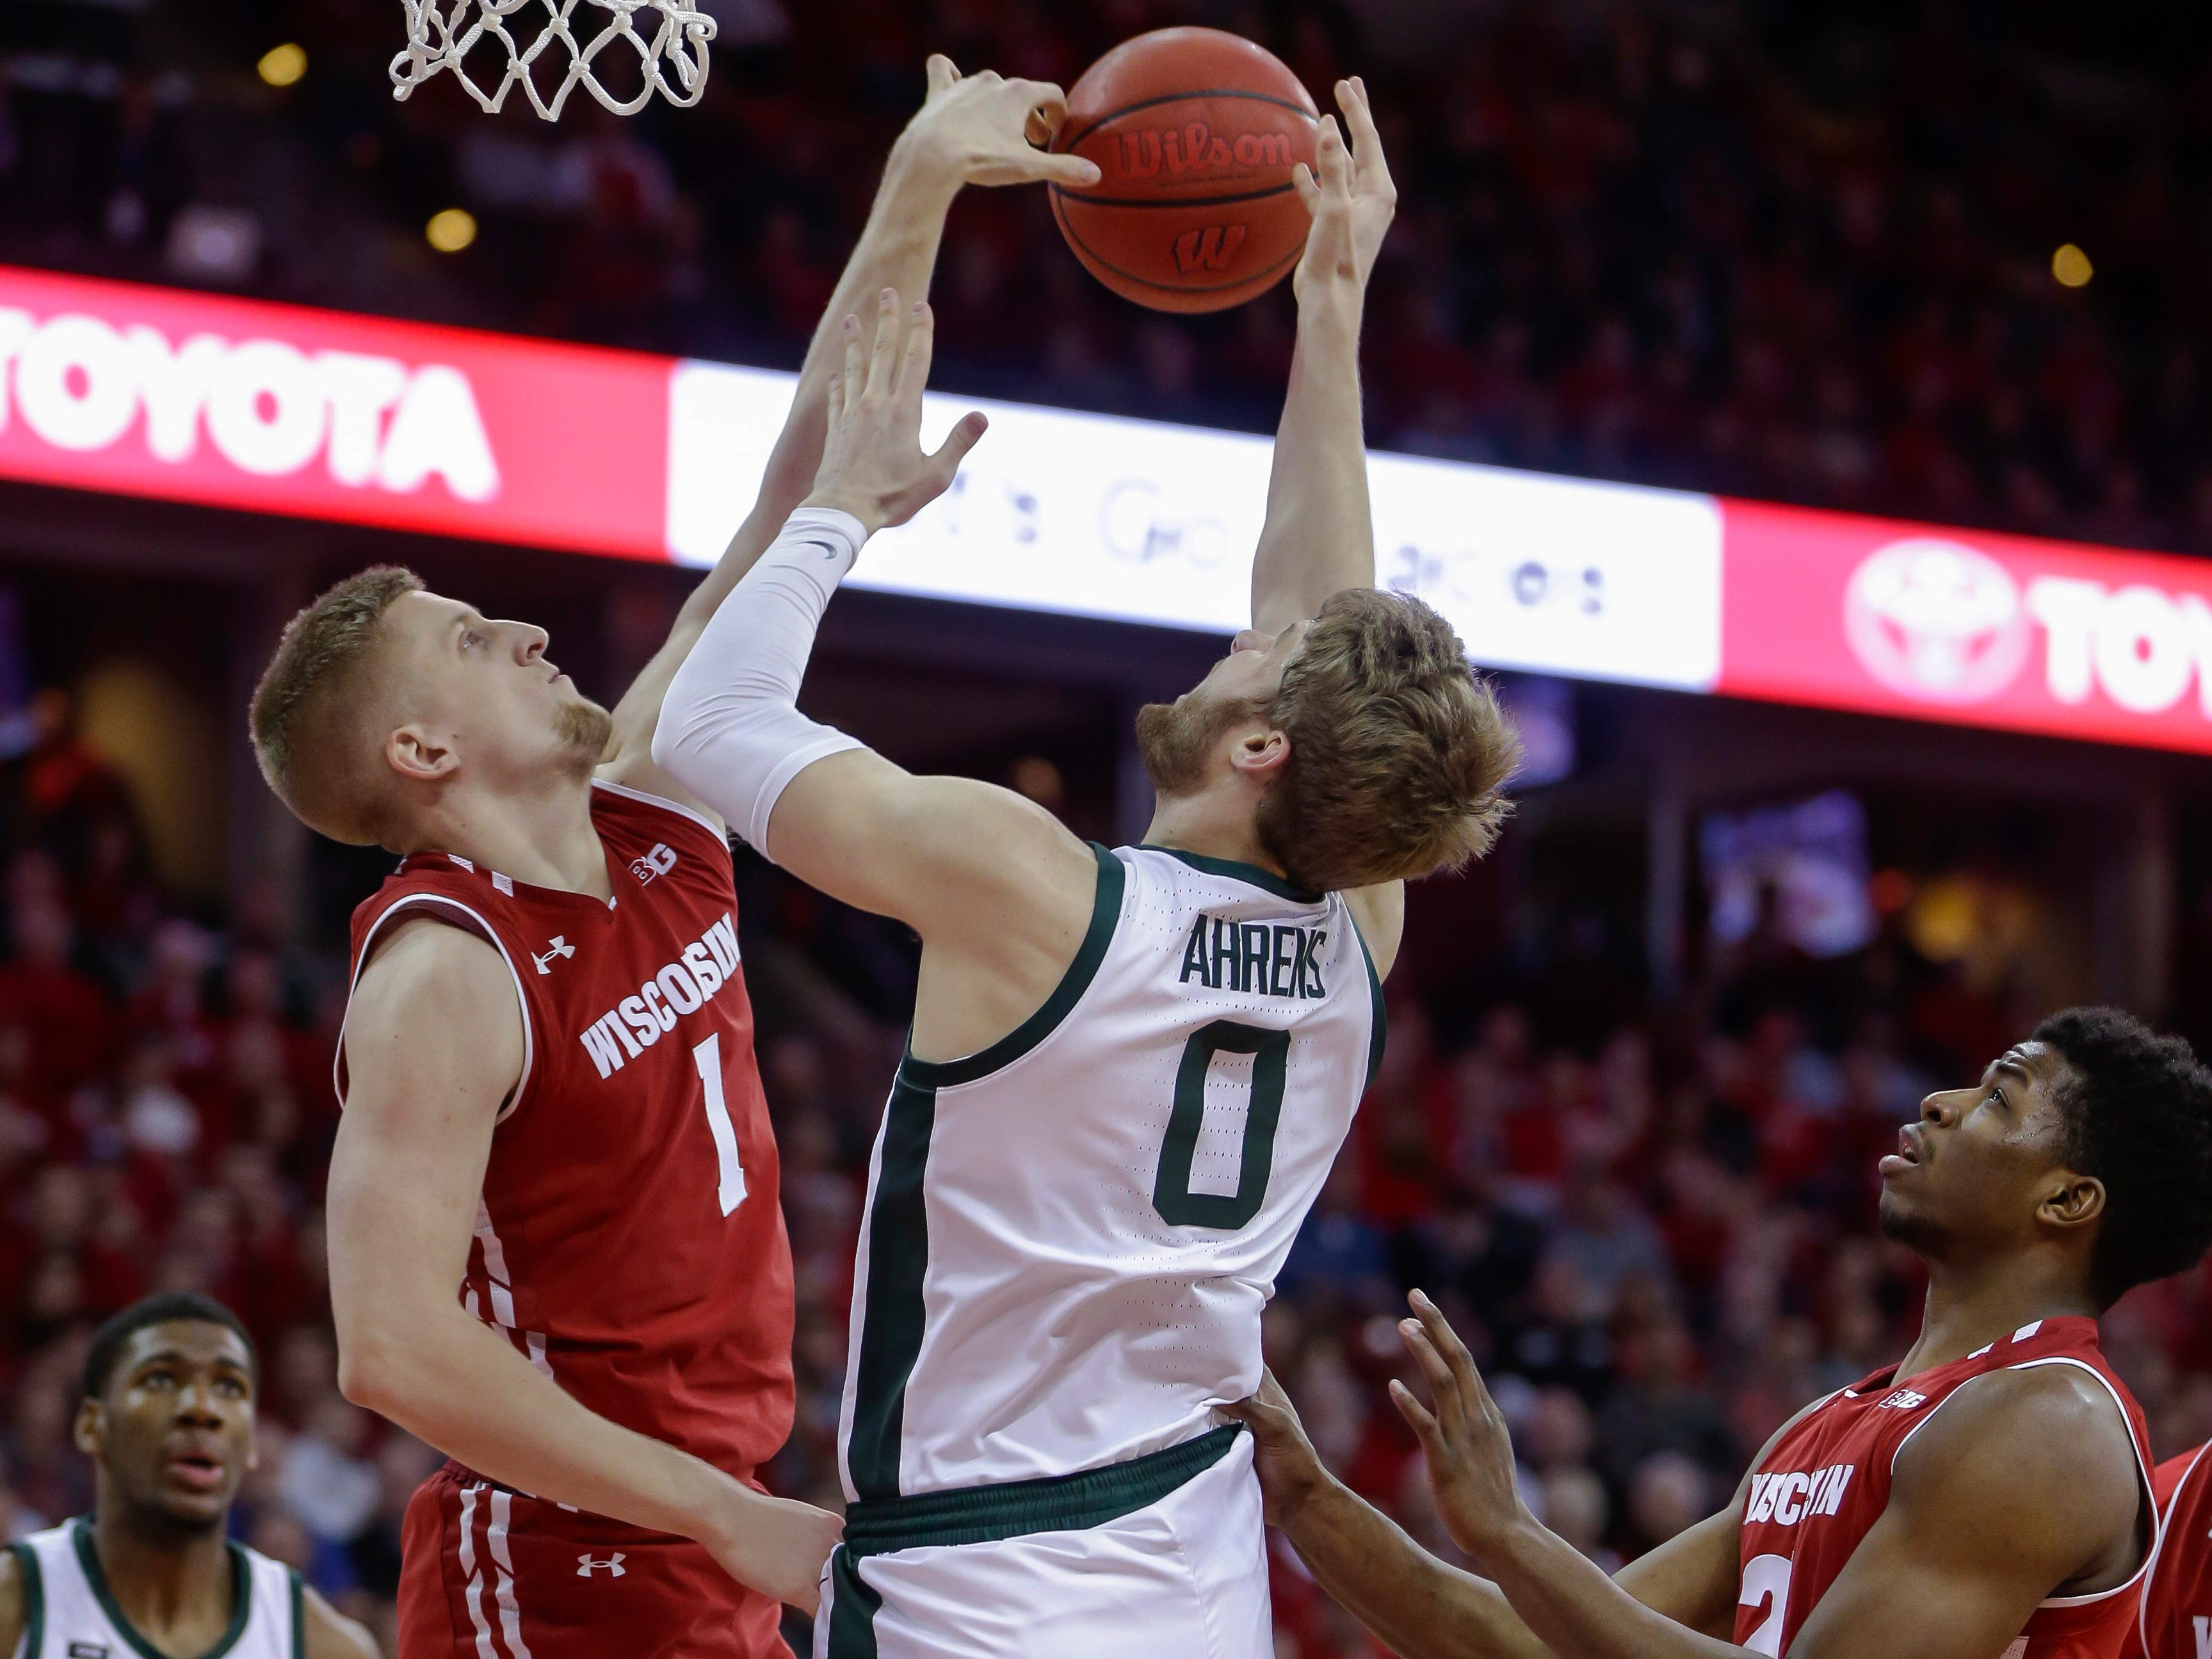 Wisconsin's Brevin Pritzl (1) blocks a shot by Michigan States's Kyle Ahrens (0) during the first half of an NCAA college basketball game Tuesday, Feb. 12, 2019, in Madison, Wis.